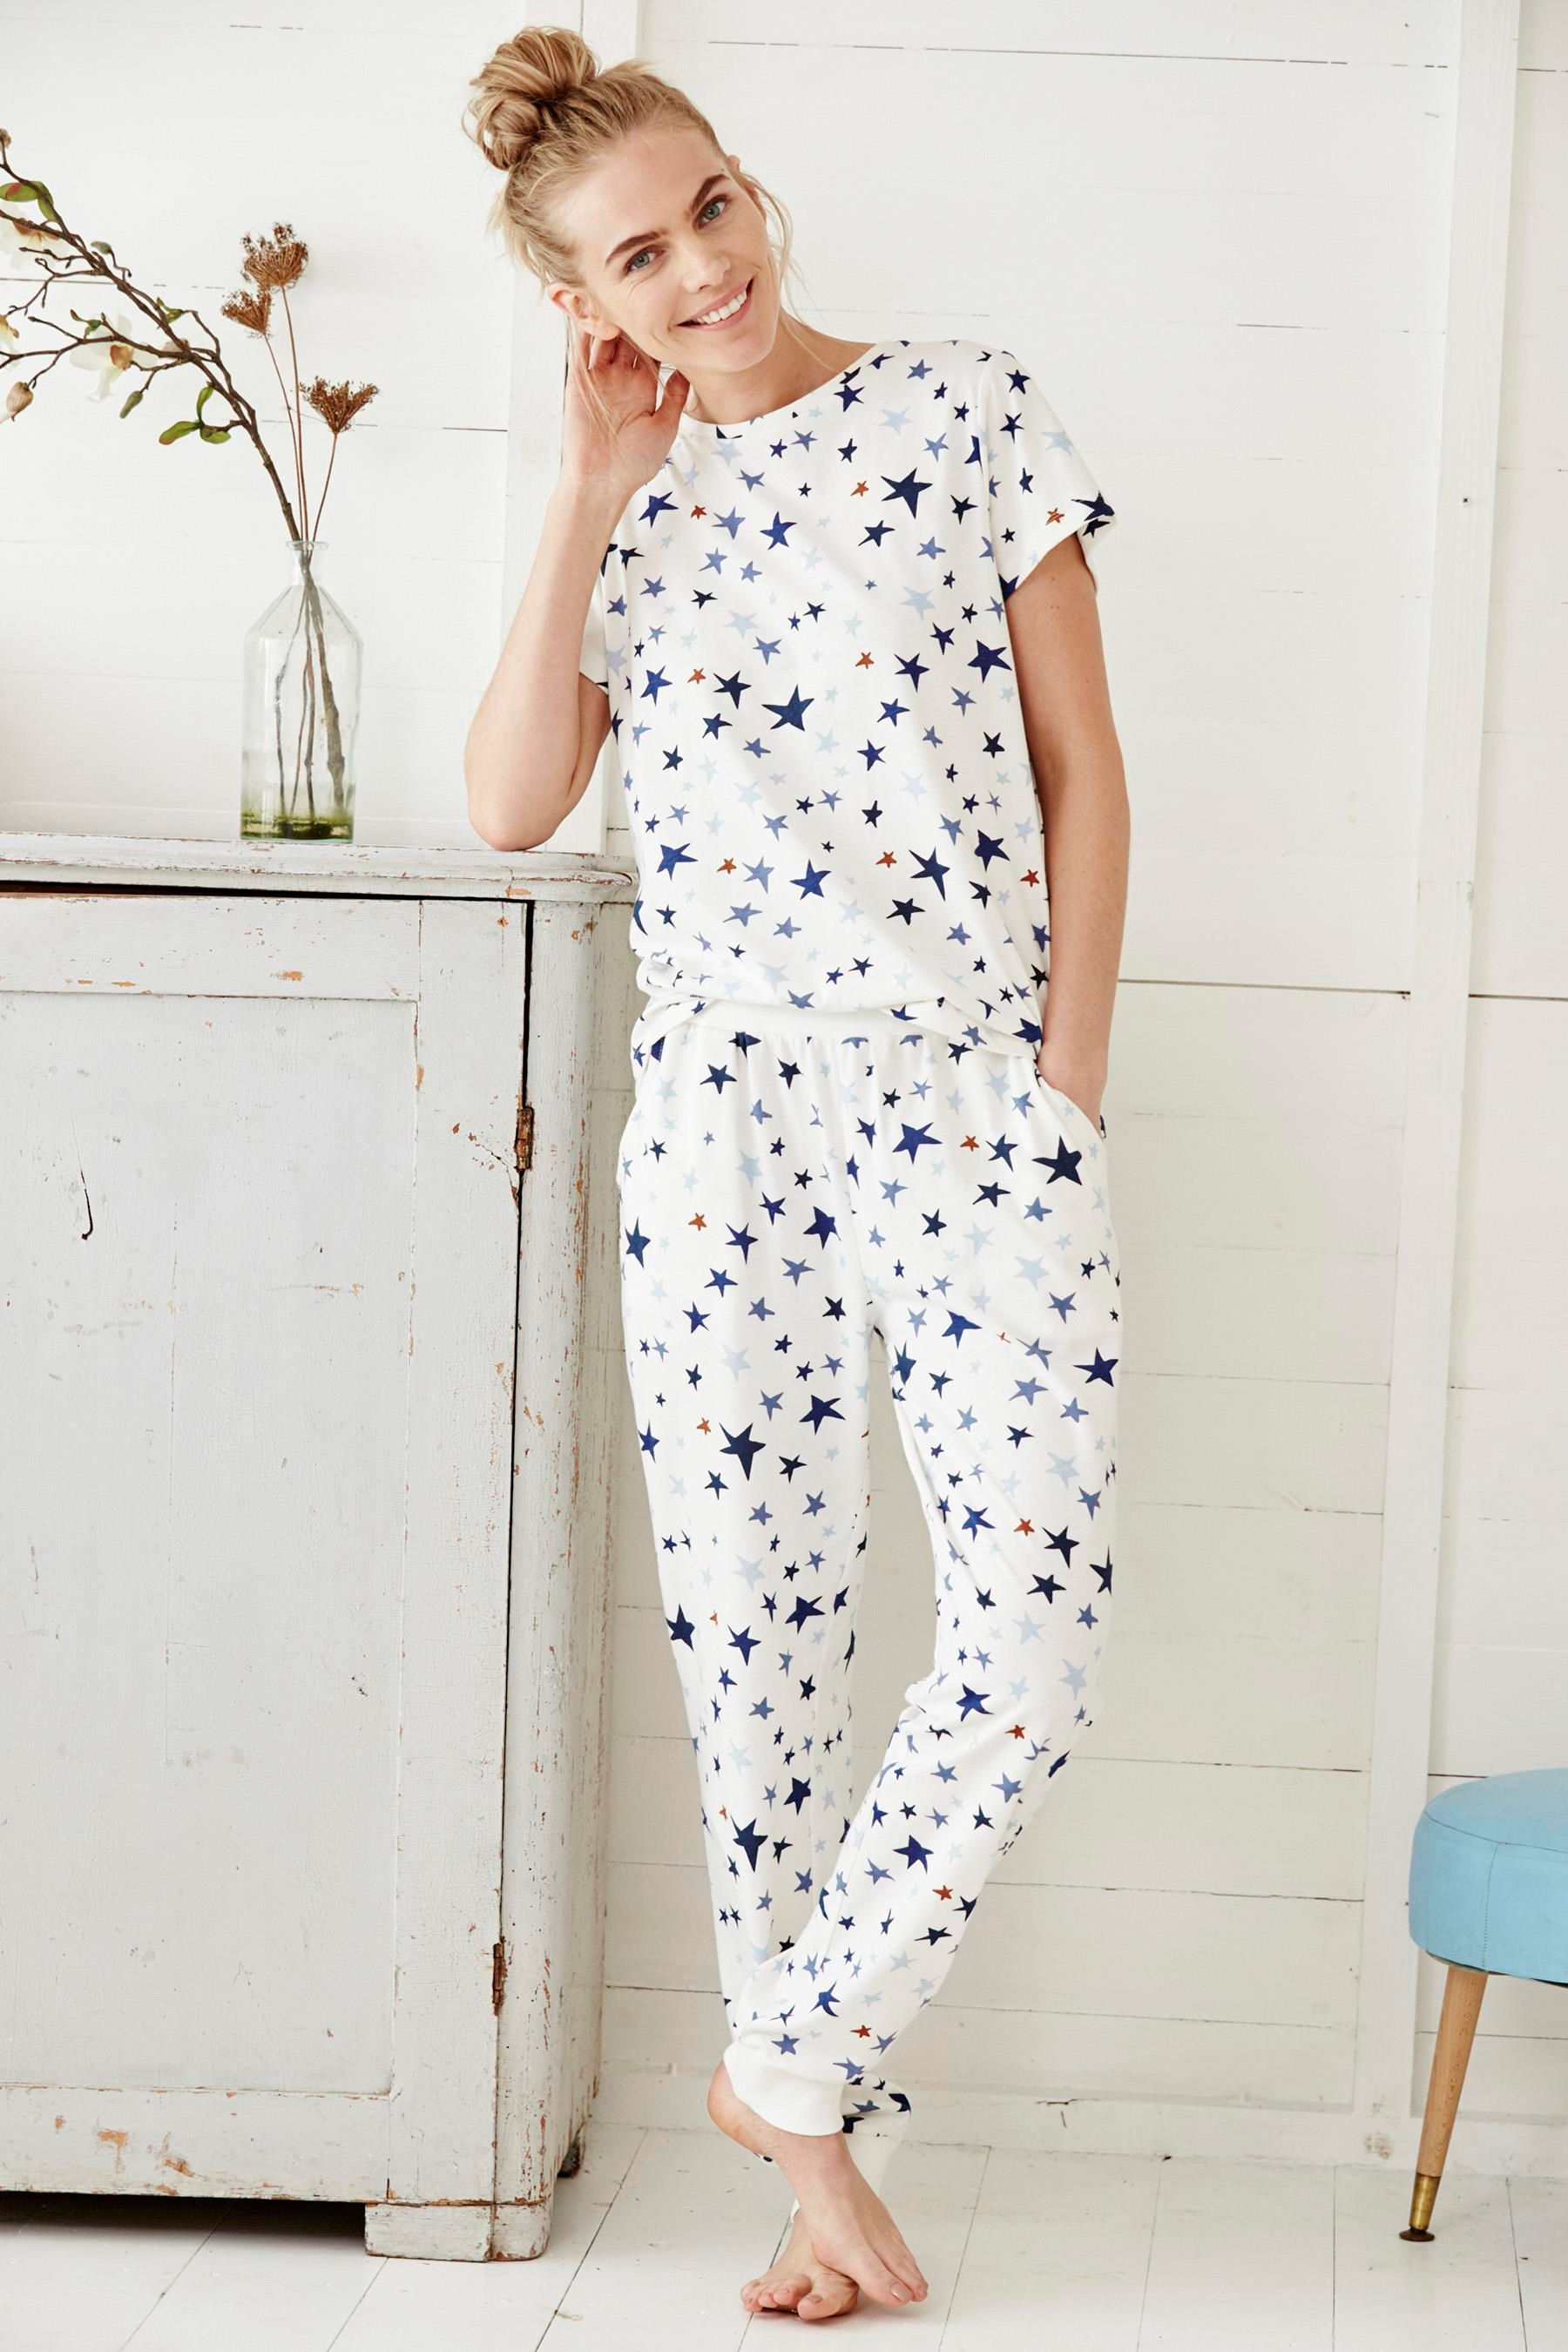 ccf8c5901114 Buy Cream Blue Short Sleeve Printed Pyjamas online today at Next  Mexico